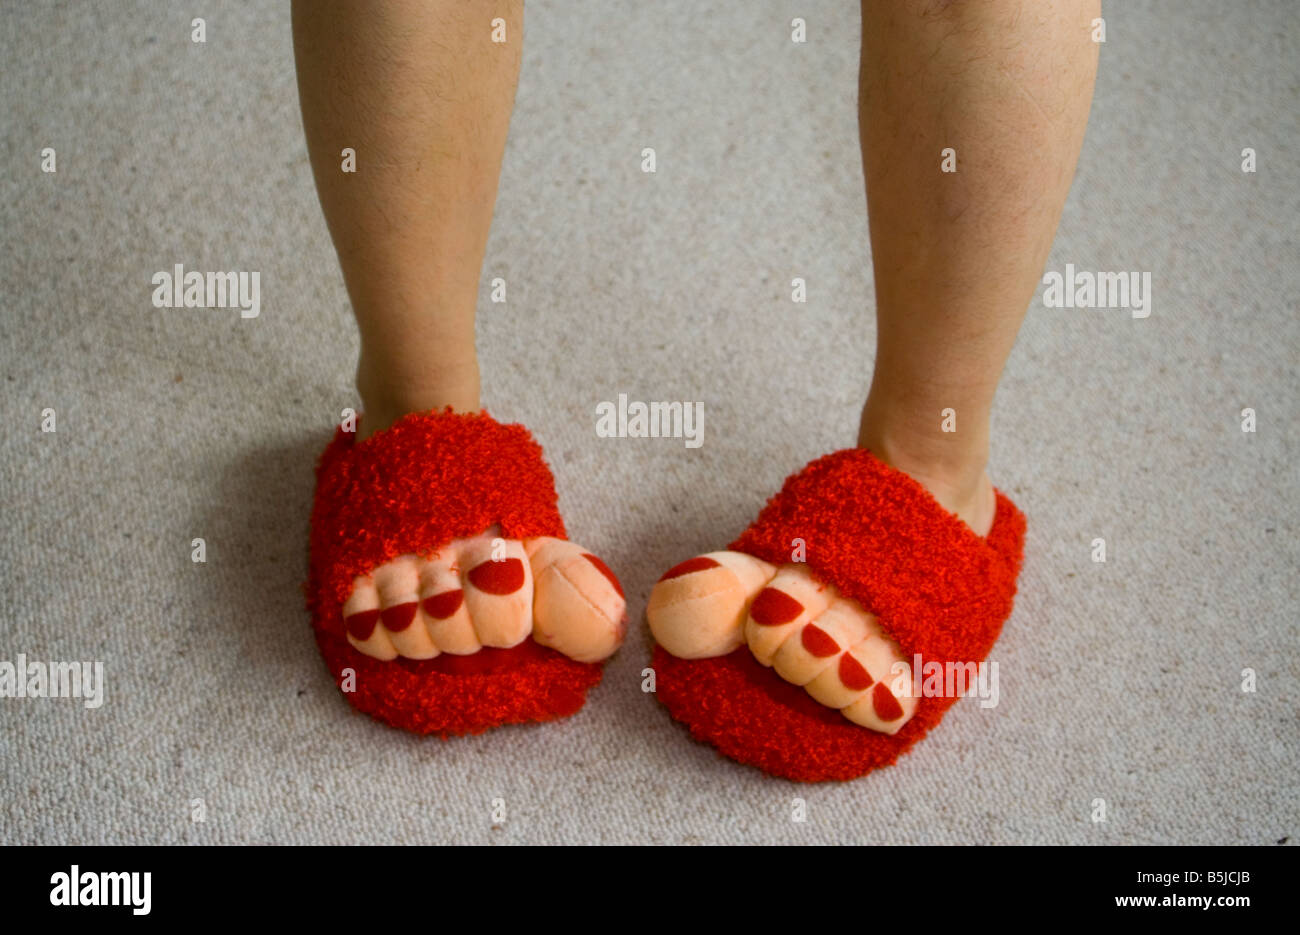 7b462e05055 Legs wearing red slippers Stock Photo  20688707 - Alamy